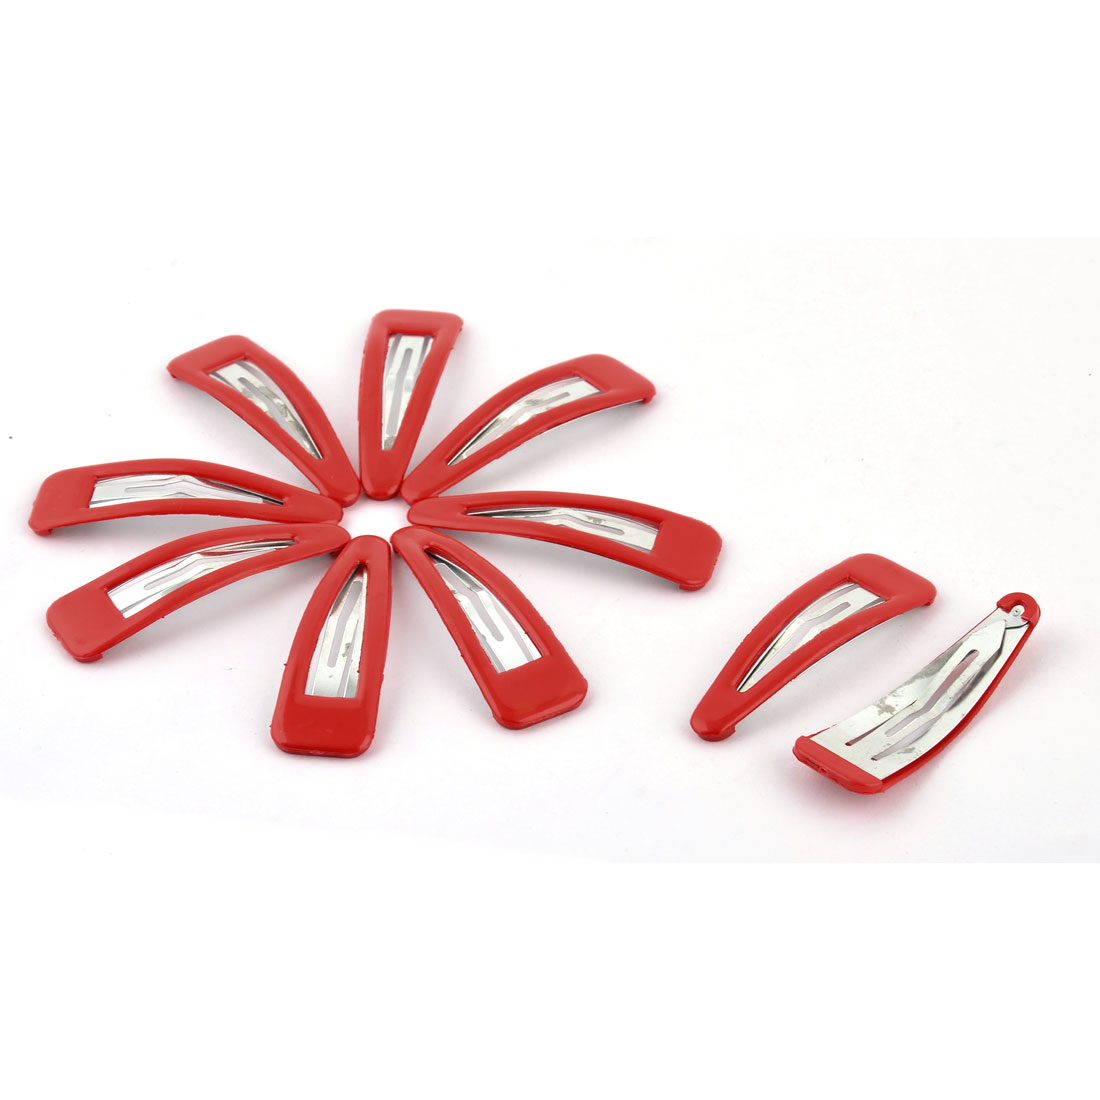 Home Lady Accessories Metal Decorative Charming Bendy Hair Snap Clip Hairpin